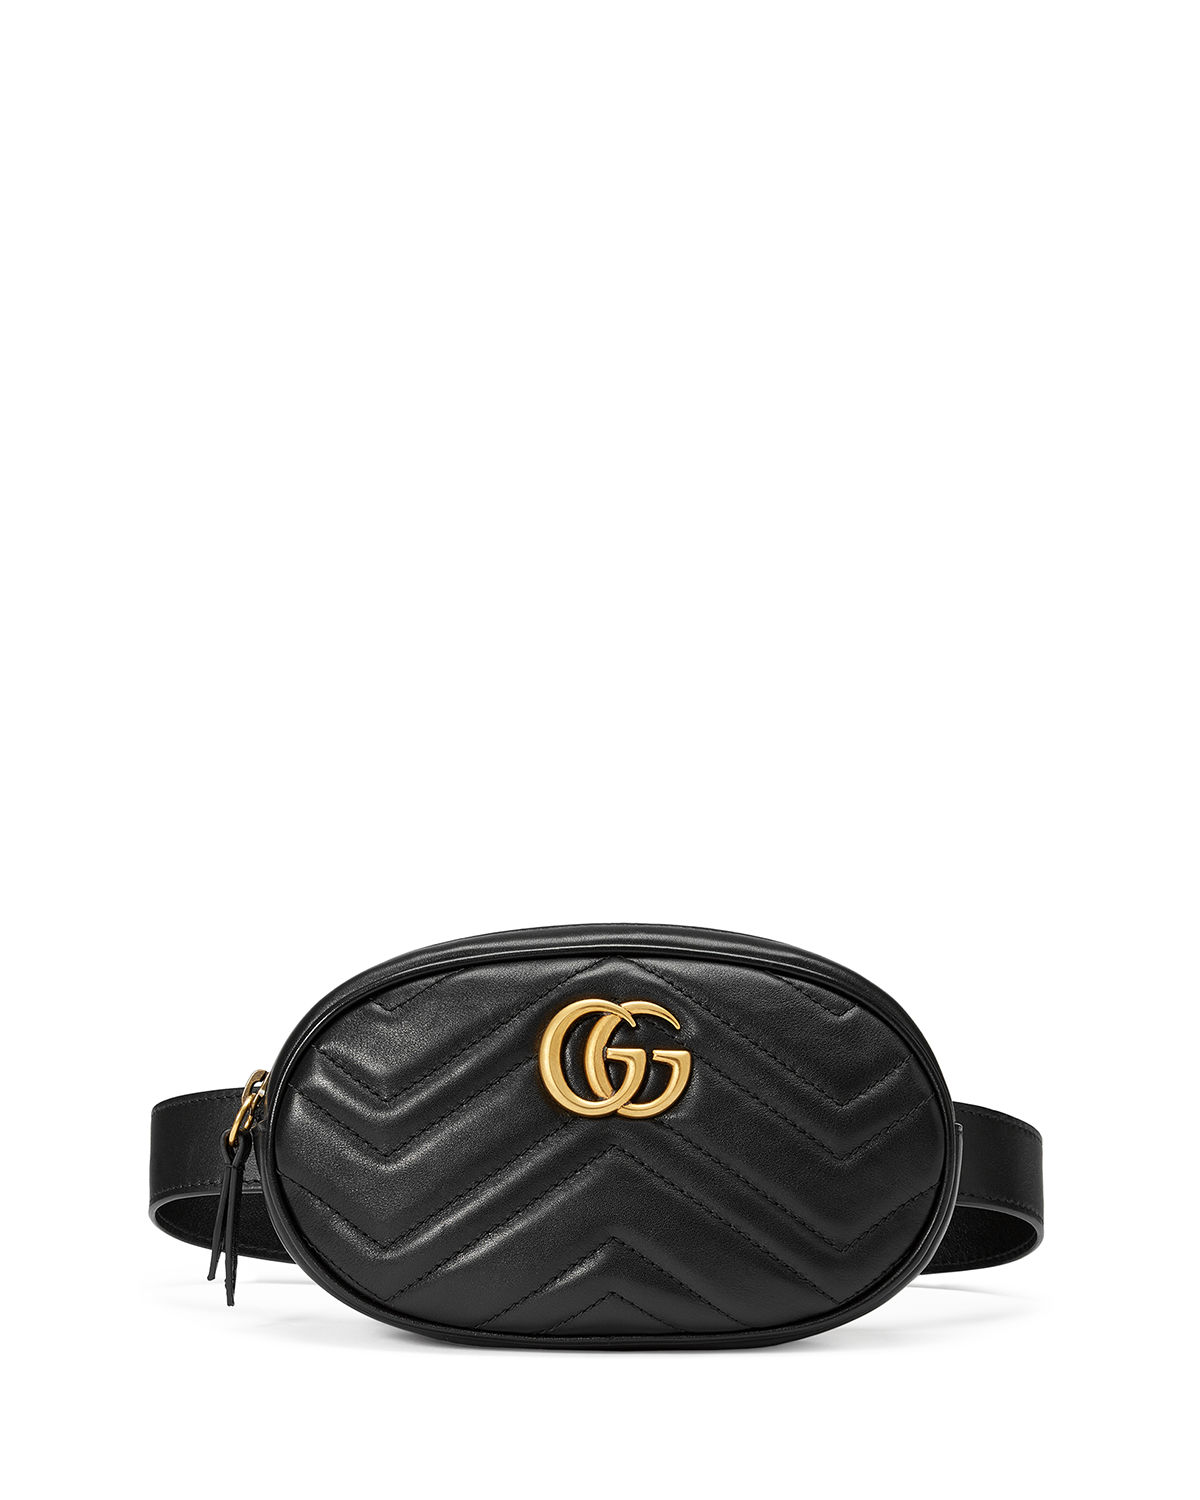 b9784af51 Gucci GG Marmont Small Matelasse Leather Belt Bag | Neiman Marcus